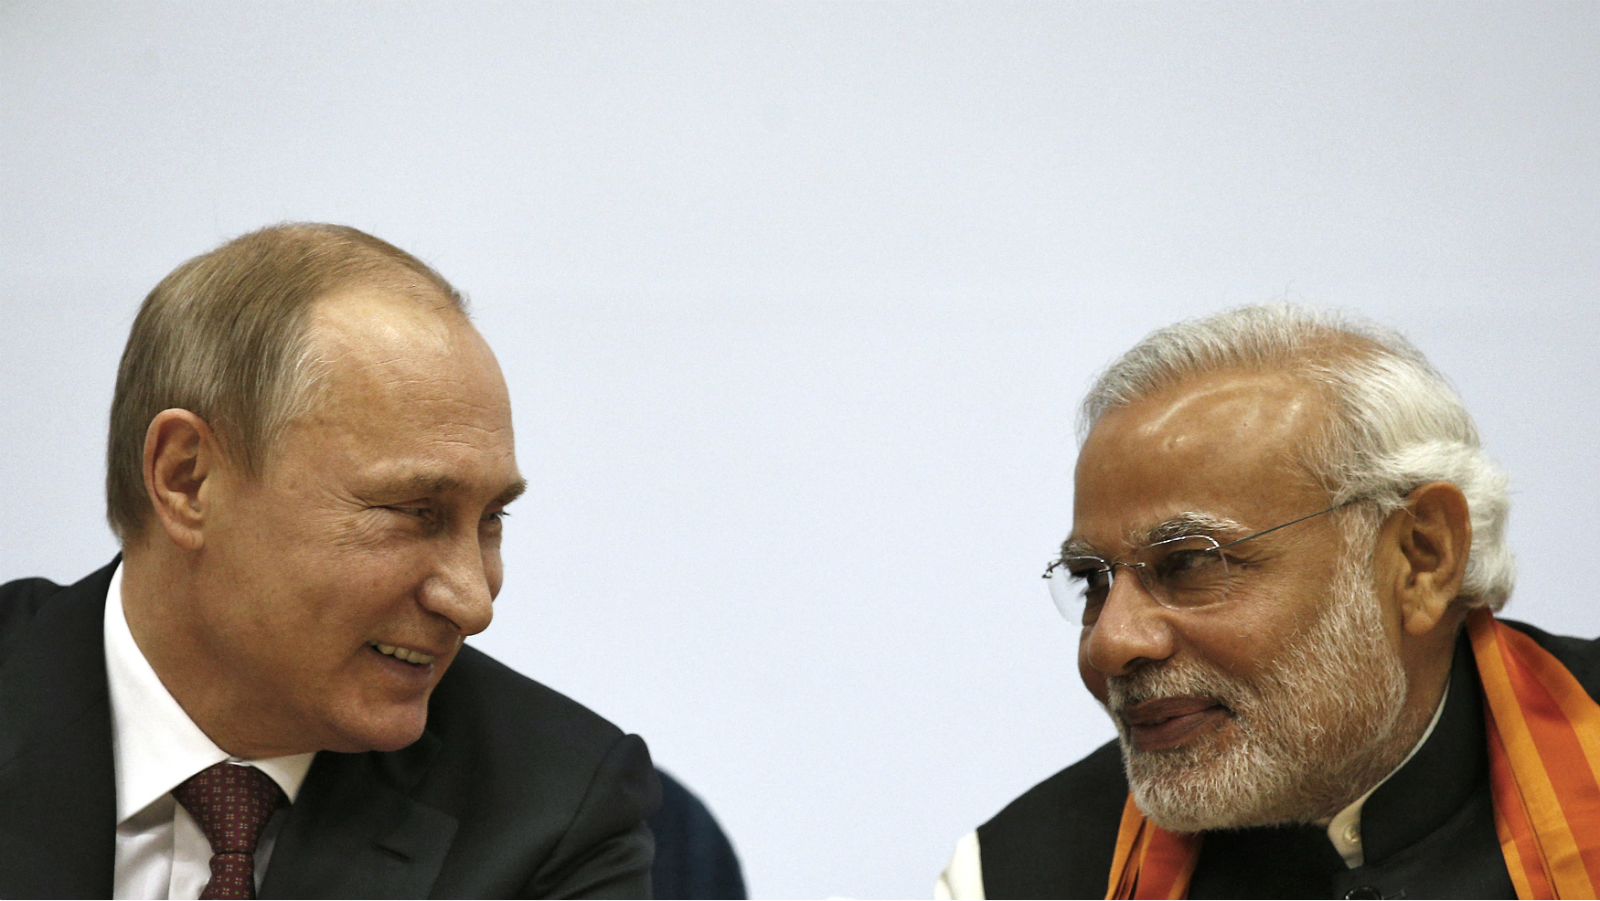 Russian President Vladimir Putin (L) and India's Prime Minister Narendra Modi smile during the inauguration of World Diamond Conference in New Delhi December 11, 2014. Modi told Putin on Thursday that Russia will remain India's top defence supplier, even though New Delhi's options had improved since the end of the Cold War.